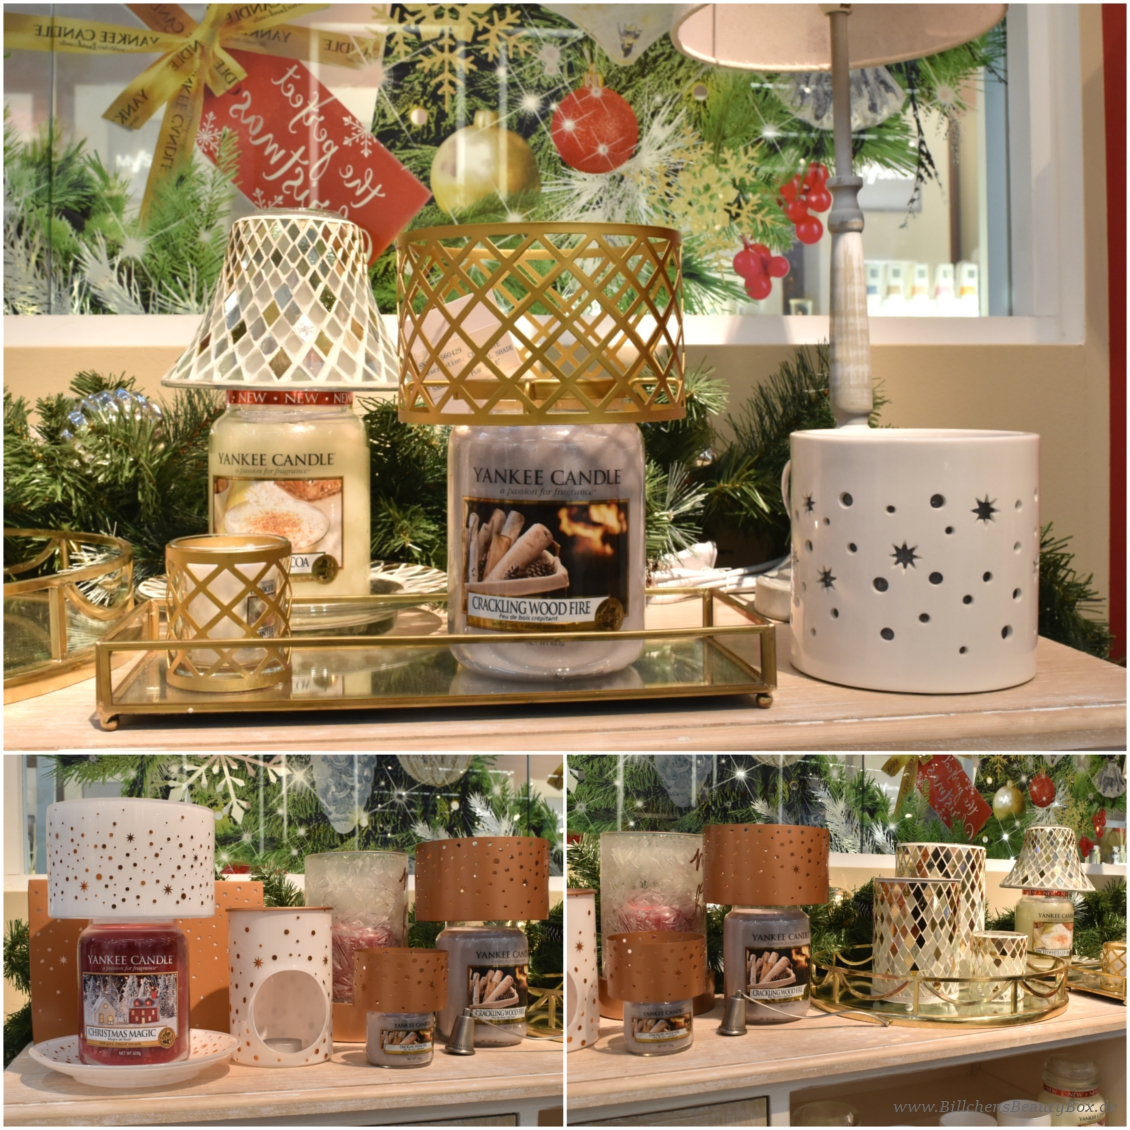 Yankee Candle - The Perfect Christmas Kollektion, Düfte und Accessoires